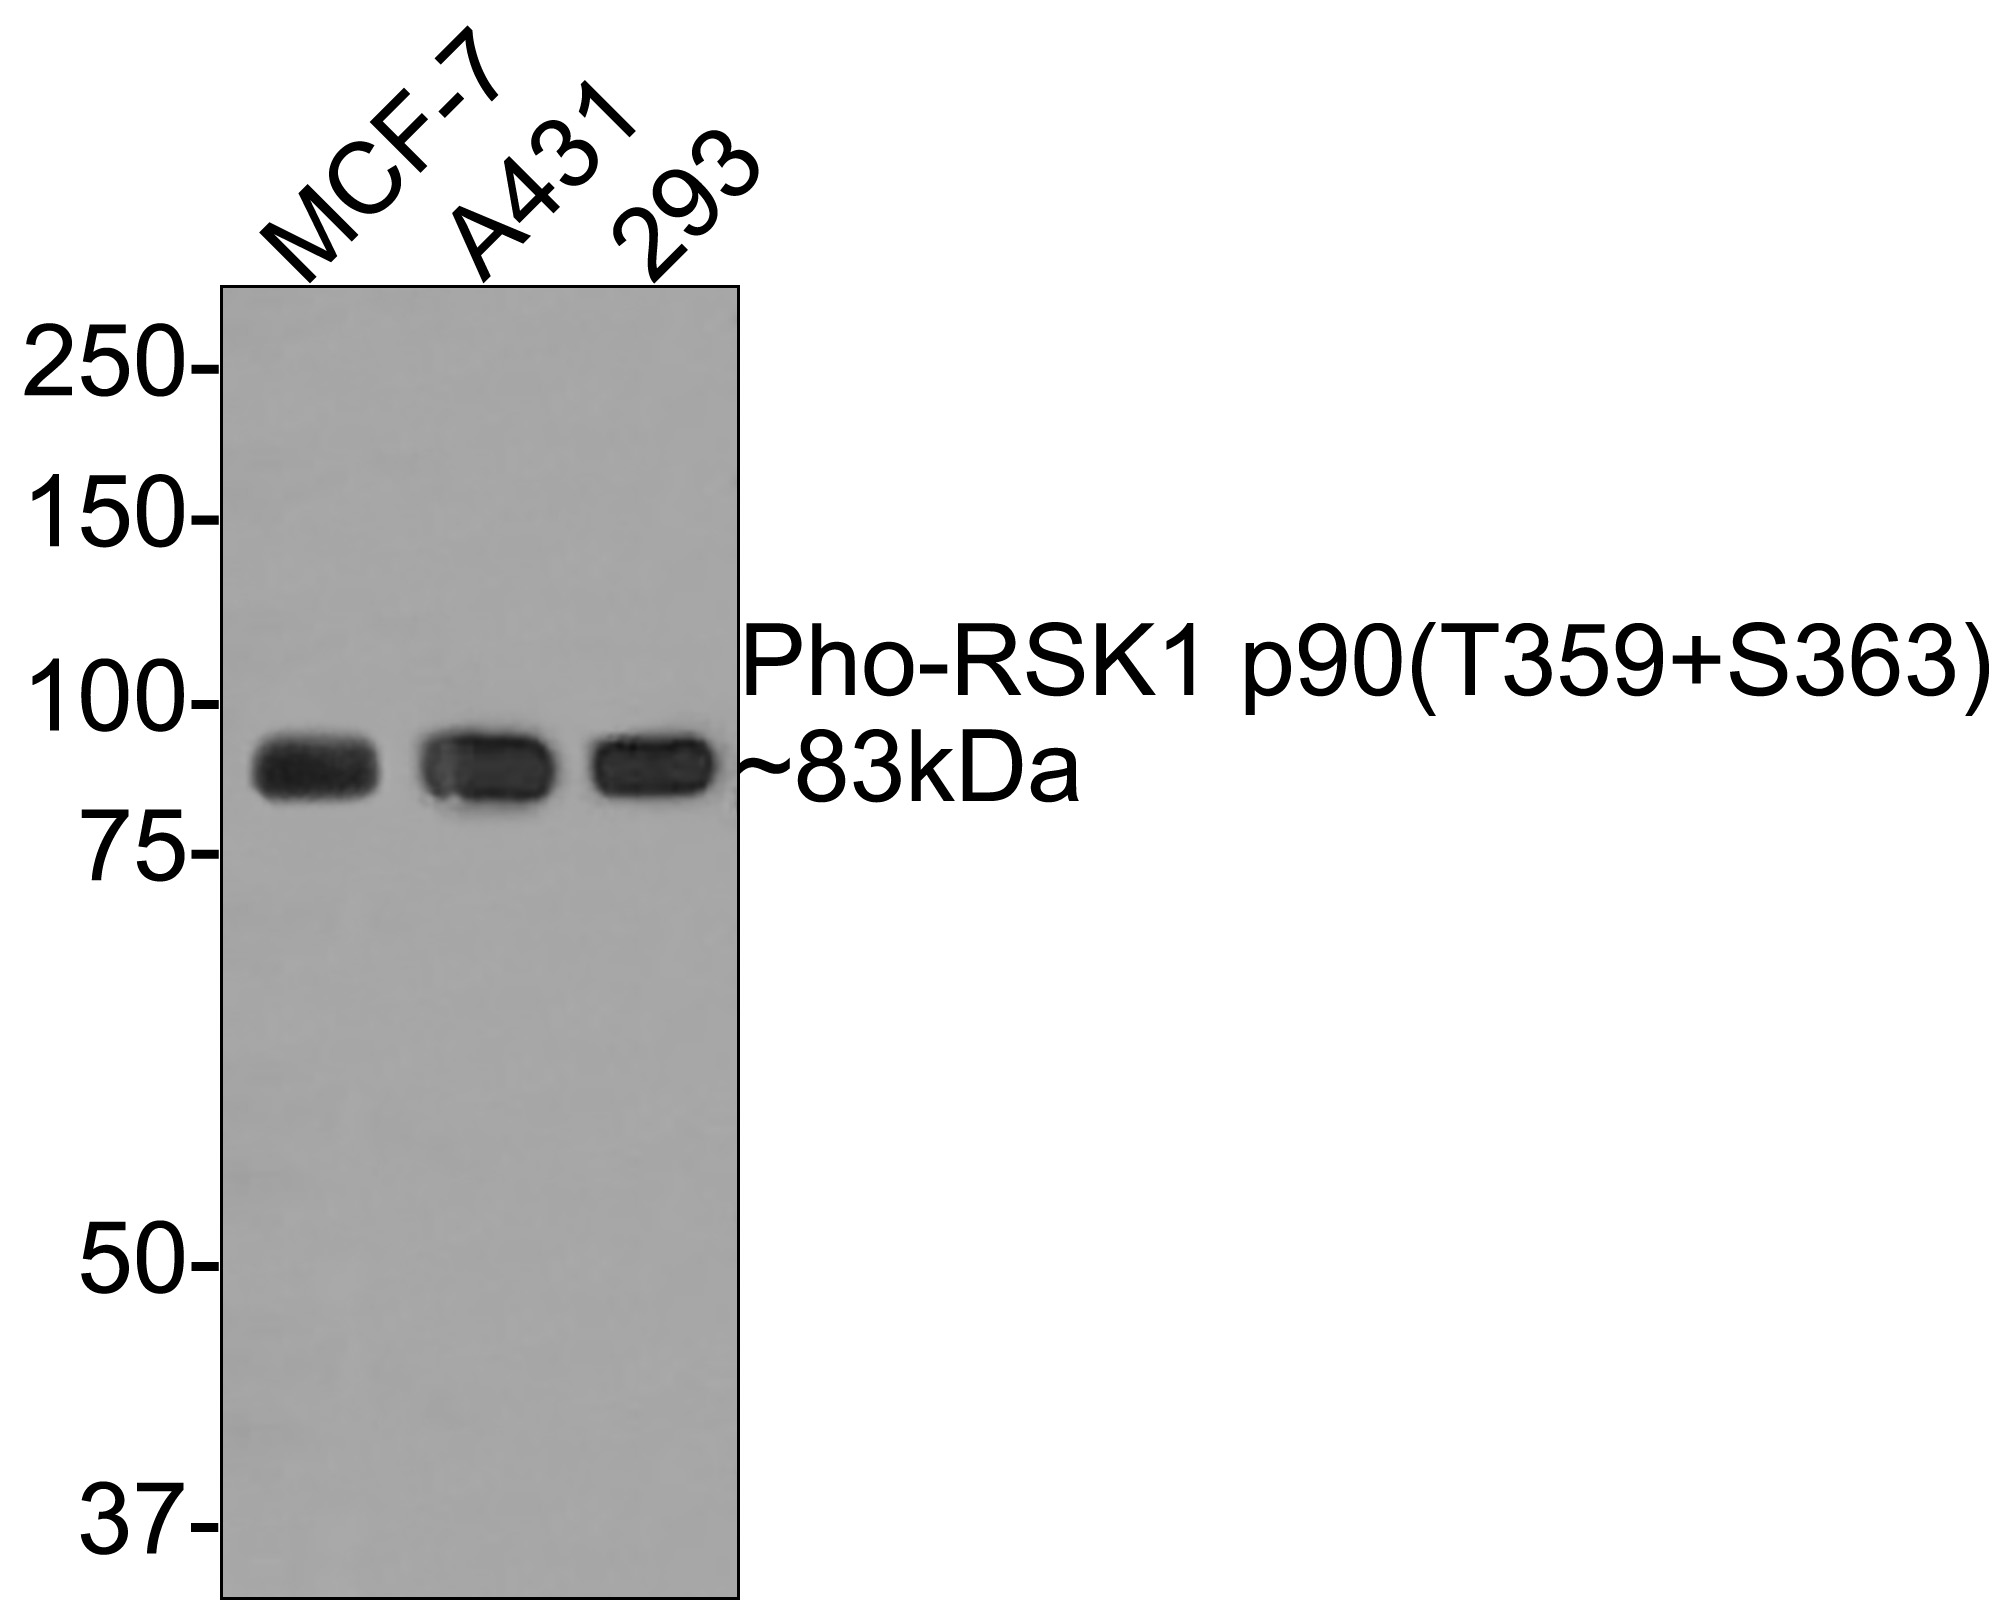 Western blot analysis of Phospho-RSK1 p90(T359+S363) on different lysates using anti-Phospho-RSK1 p90(T359+S363) antibody at 1/1,000 dilution.<br />  Positive control: <br />   Lane 1: A431 <br />   Lane 2: 293 <br />   Lane 3: MCF-7